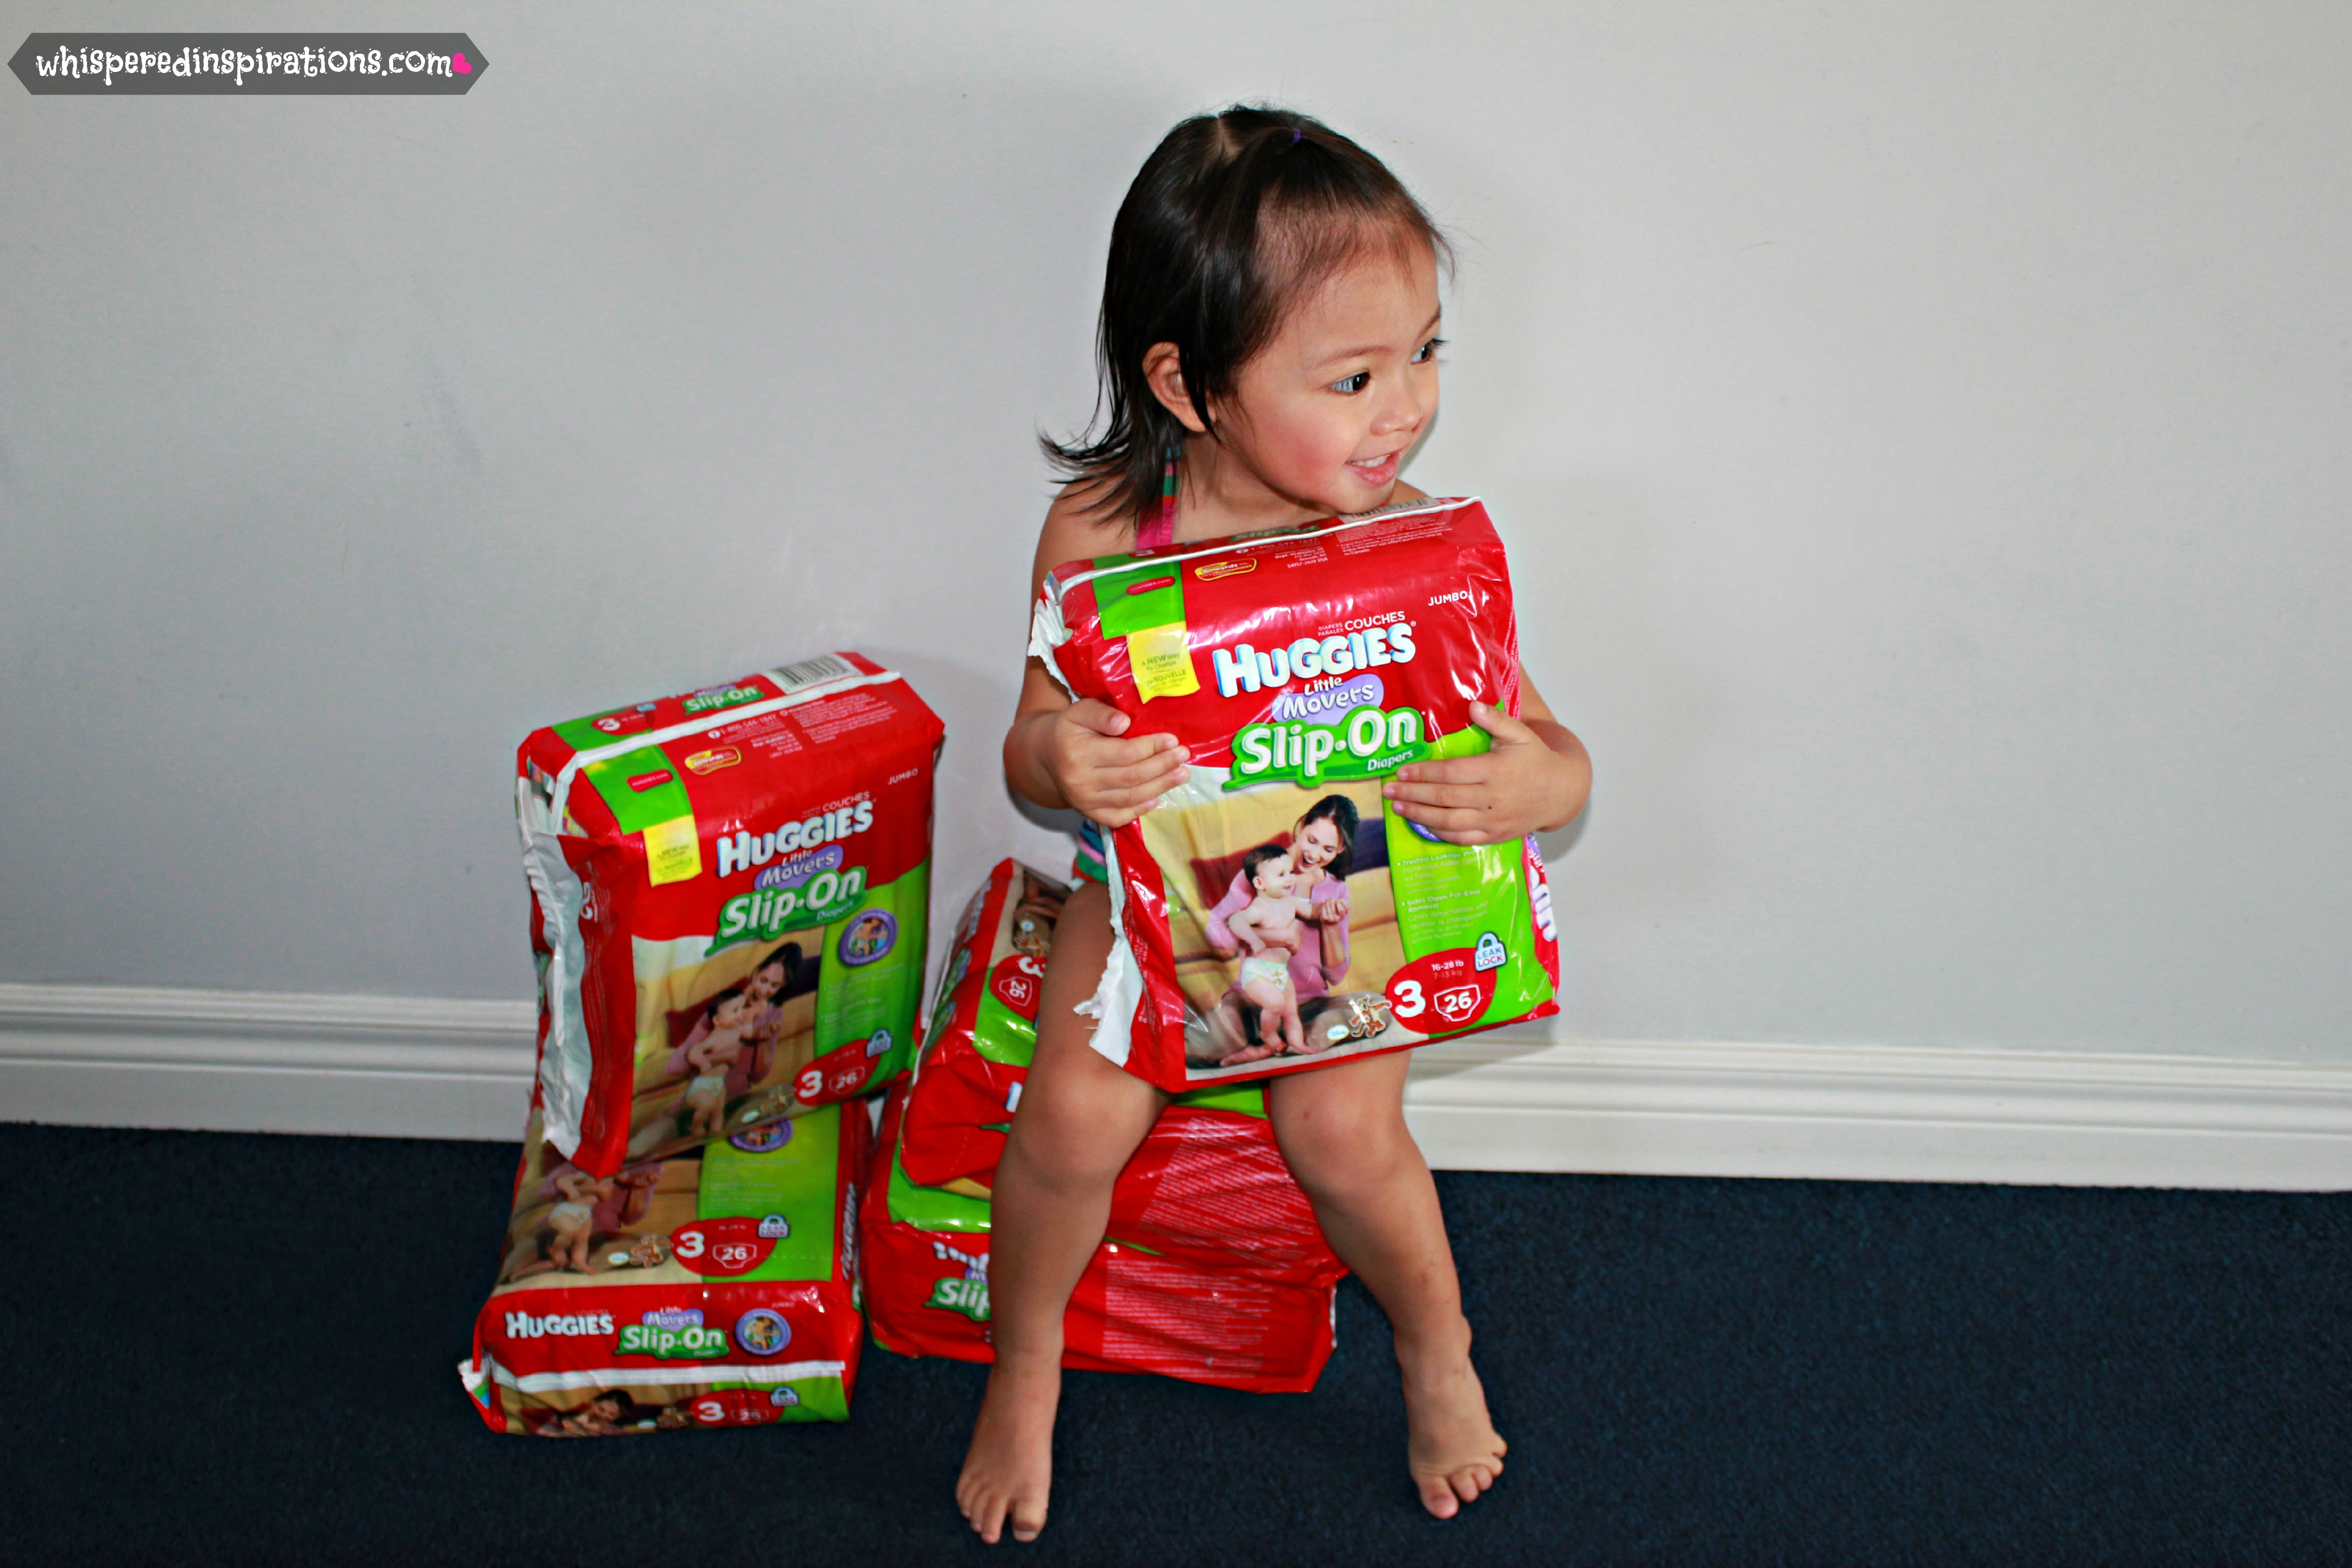 Huggies Little Movers Slip-On Diapers: Your Standing Baby Deserves an Outstanding Fit! #FirstFitw